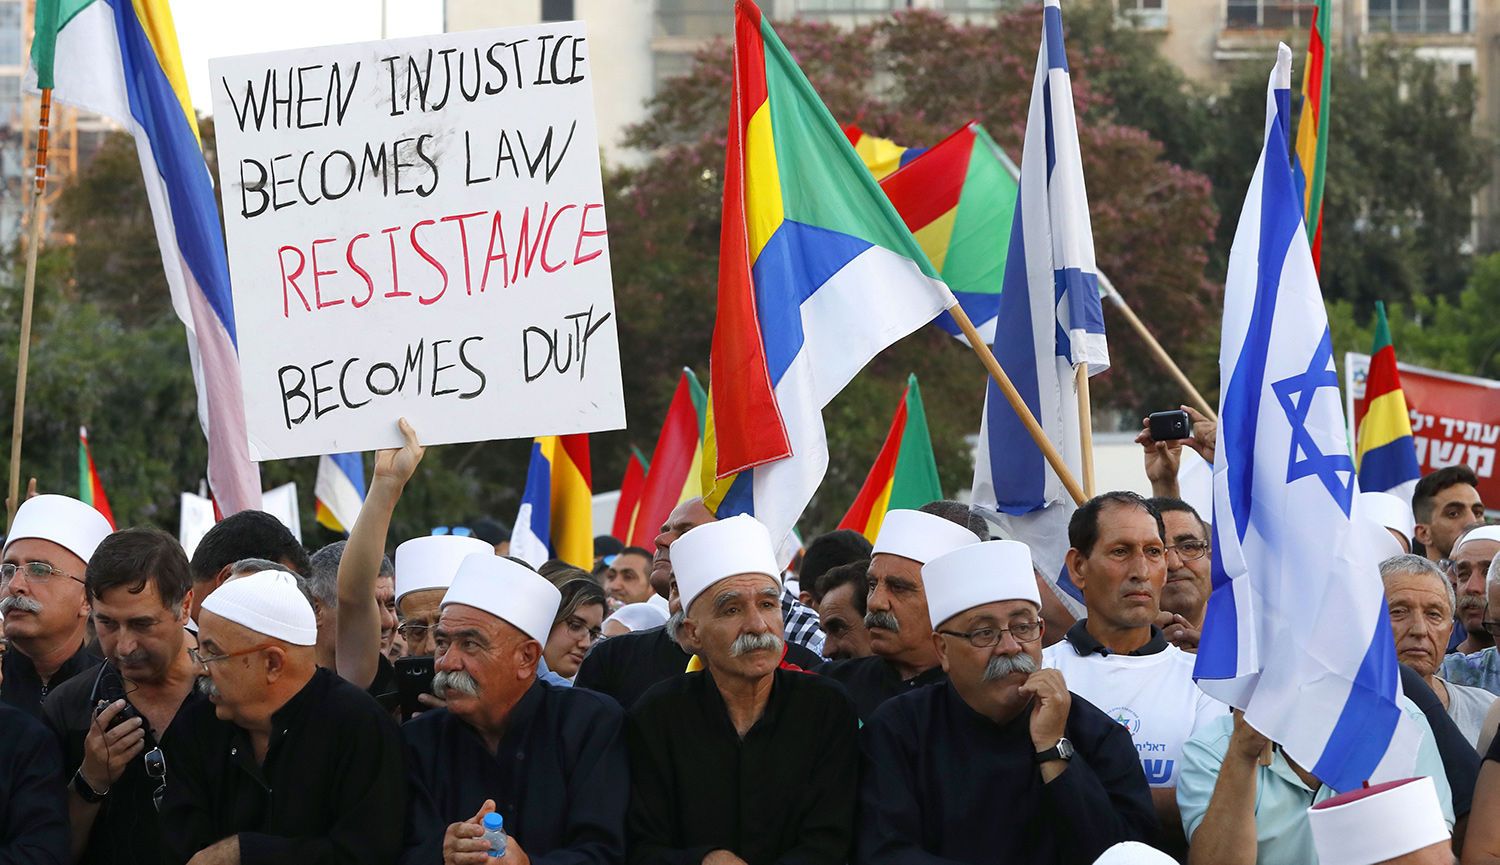 Members of the Israeli Druze community and their supporters protest against the new nation-state law in Tel Aviv. JACK GUEZ/AFP/Getty Images.